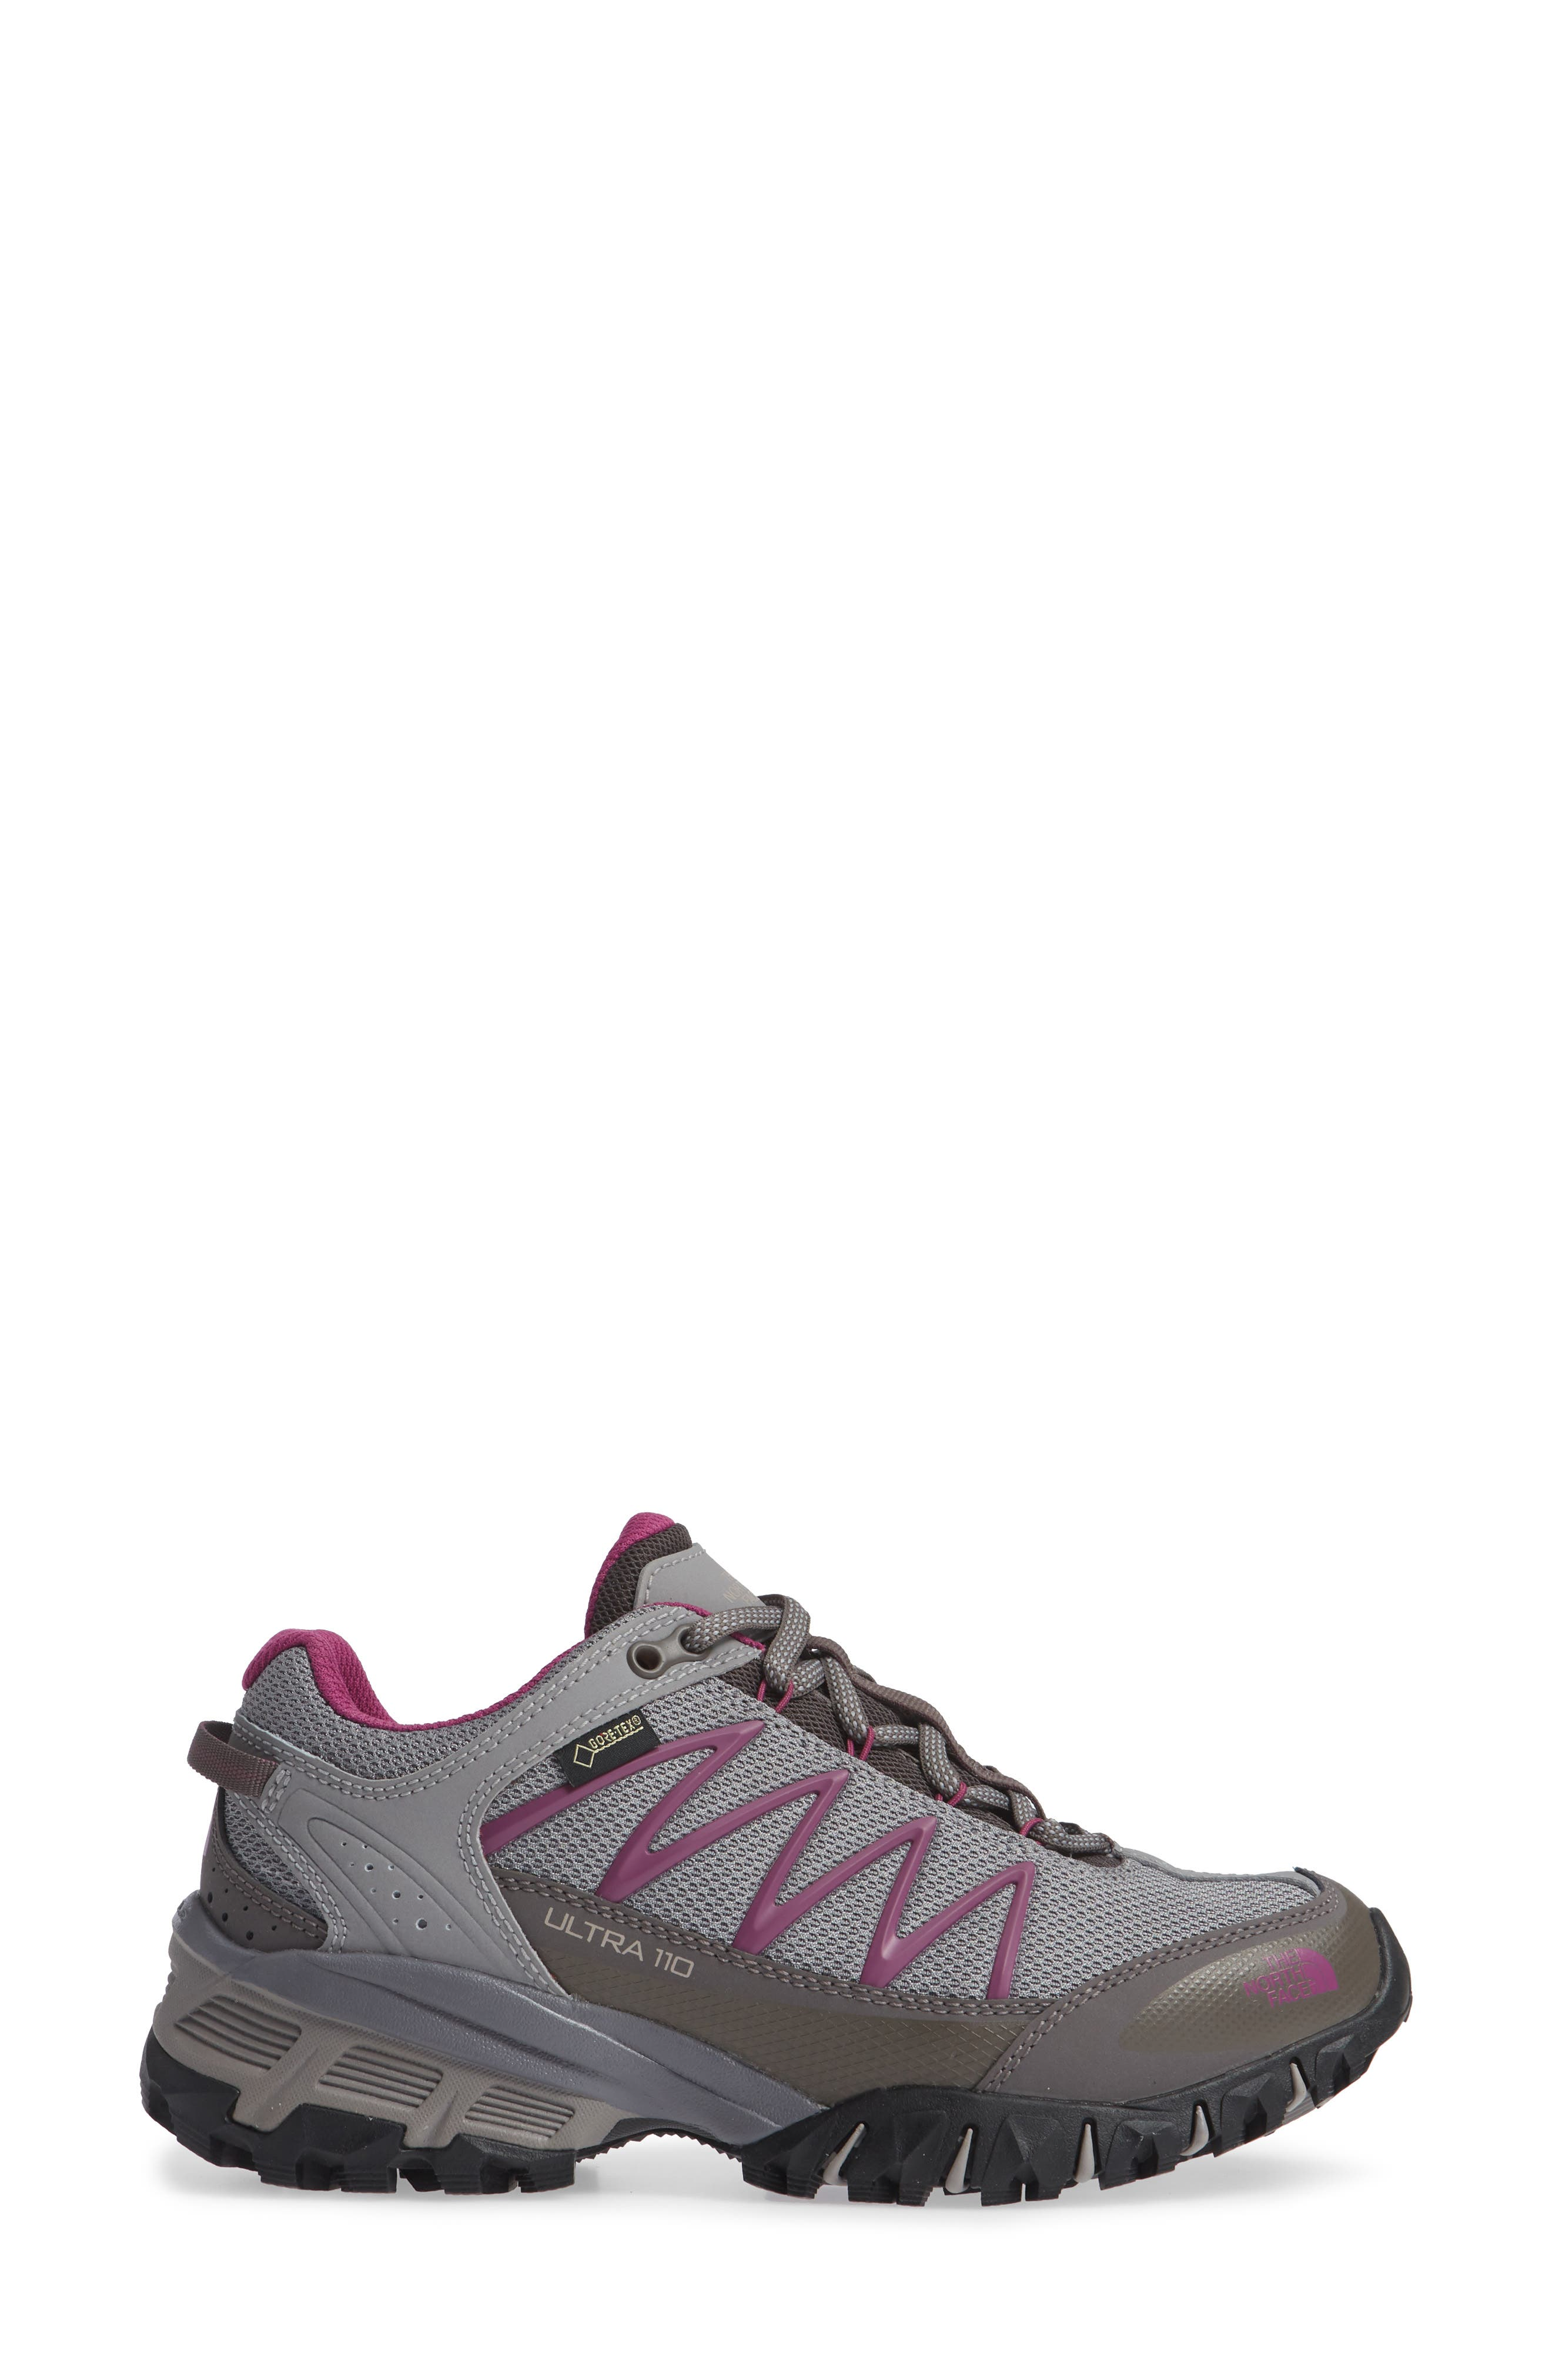 Ultra 110 GTX<sup>®</sup> Hiking Shoe,                             Alternate thumbnail 3, color,                             Q-SILVER GREY/ ASTER PURPLE